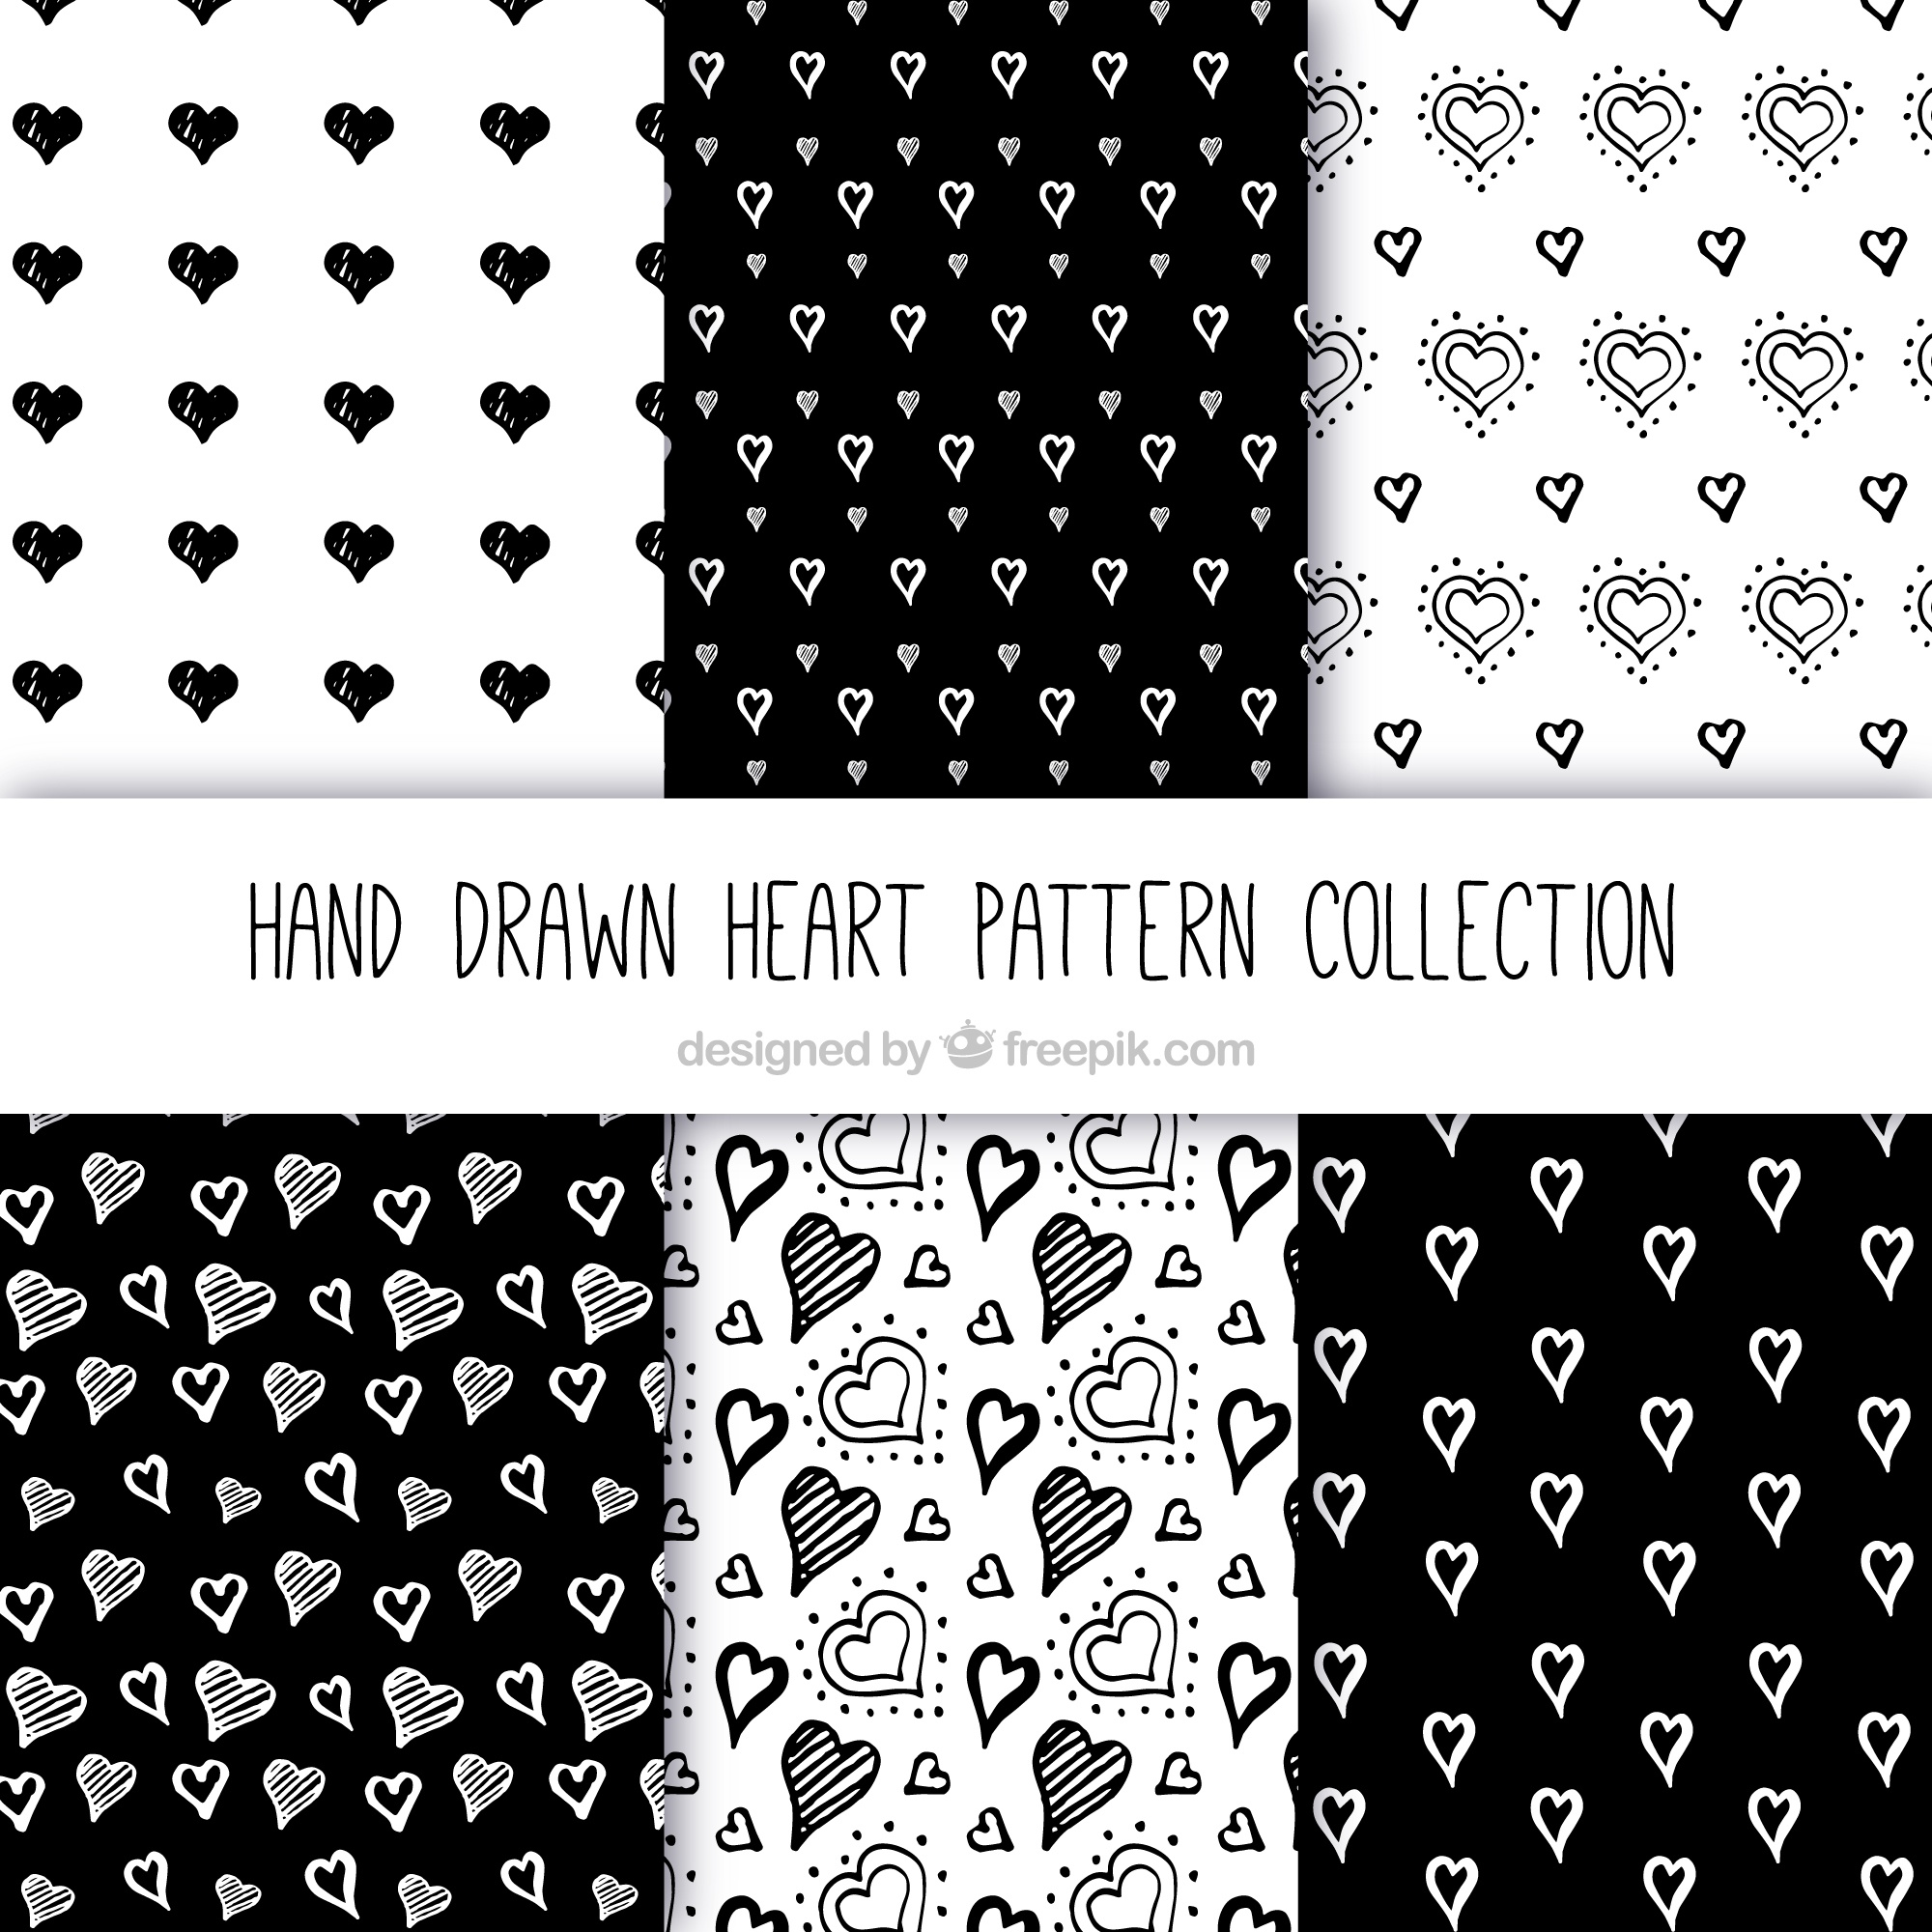 Patterns collection of hearts sketches